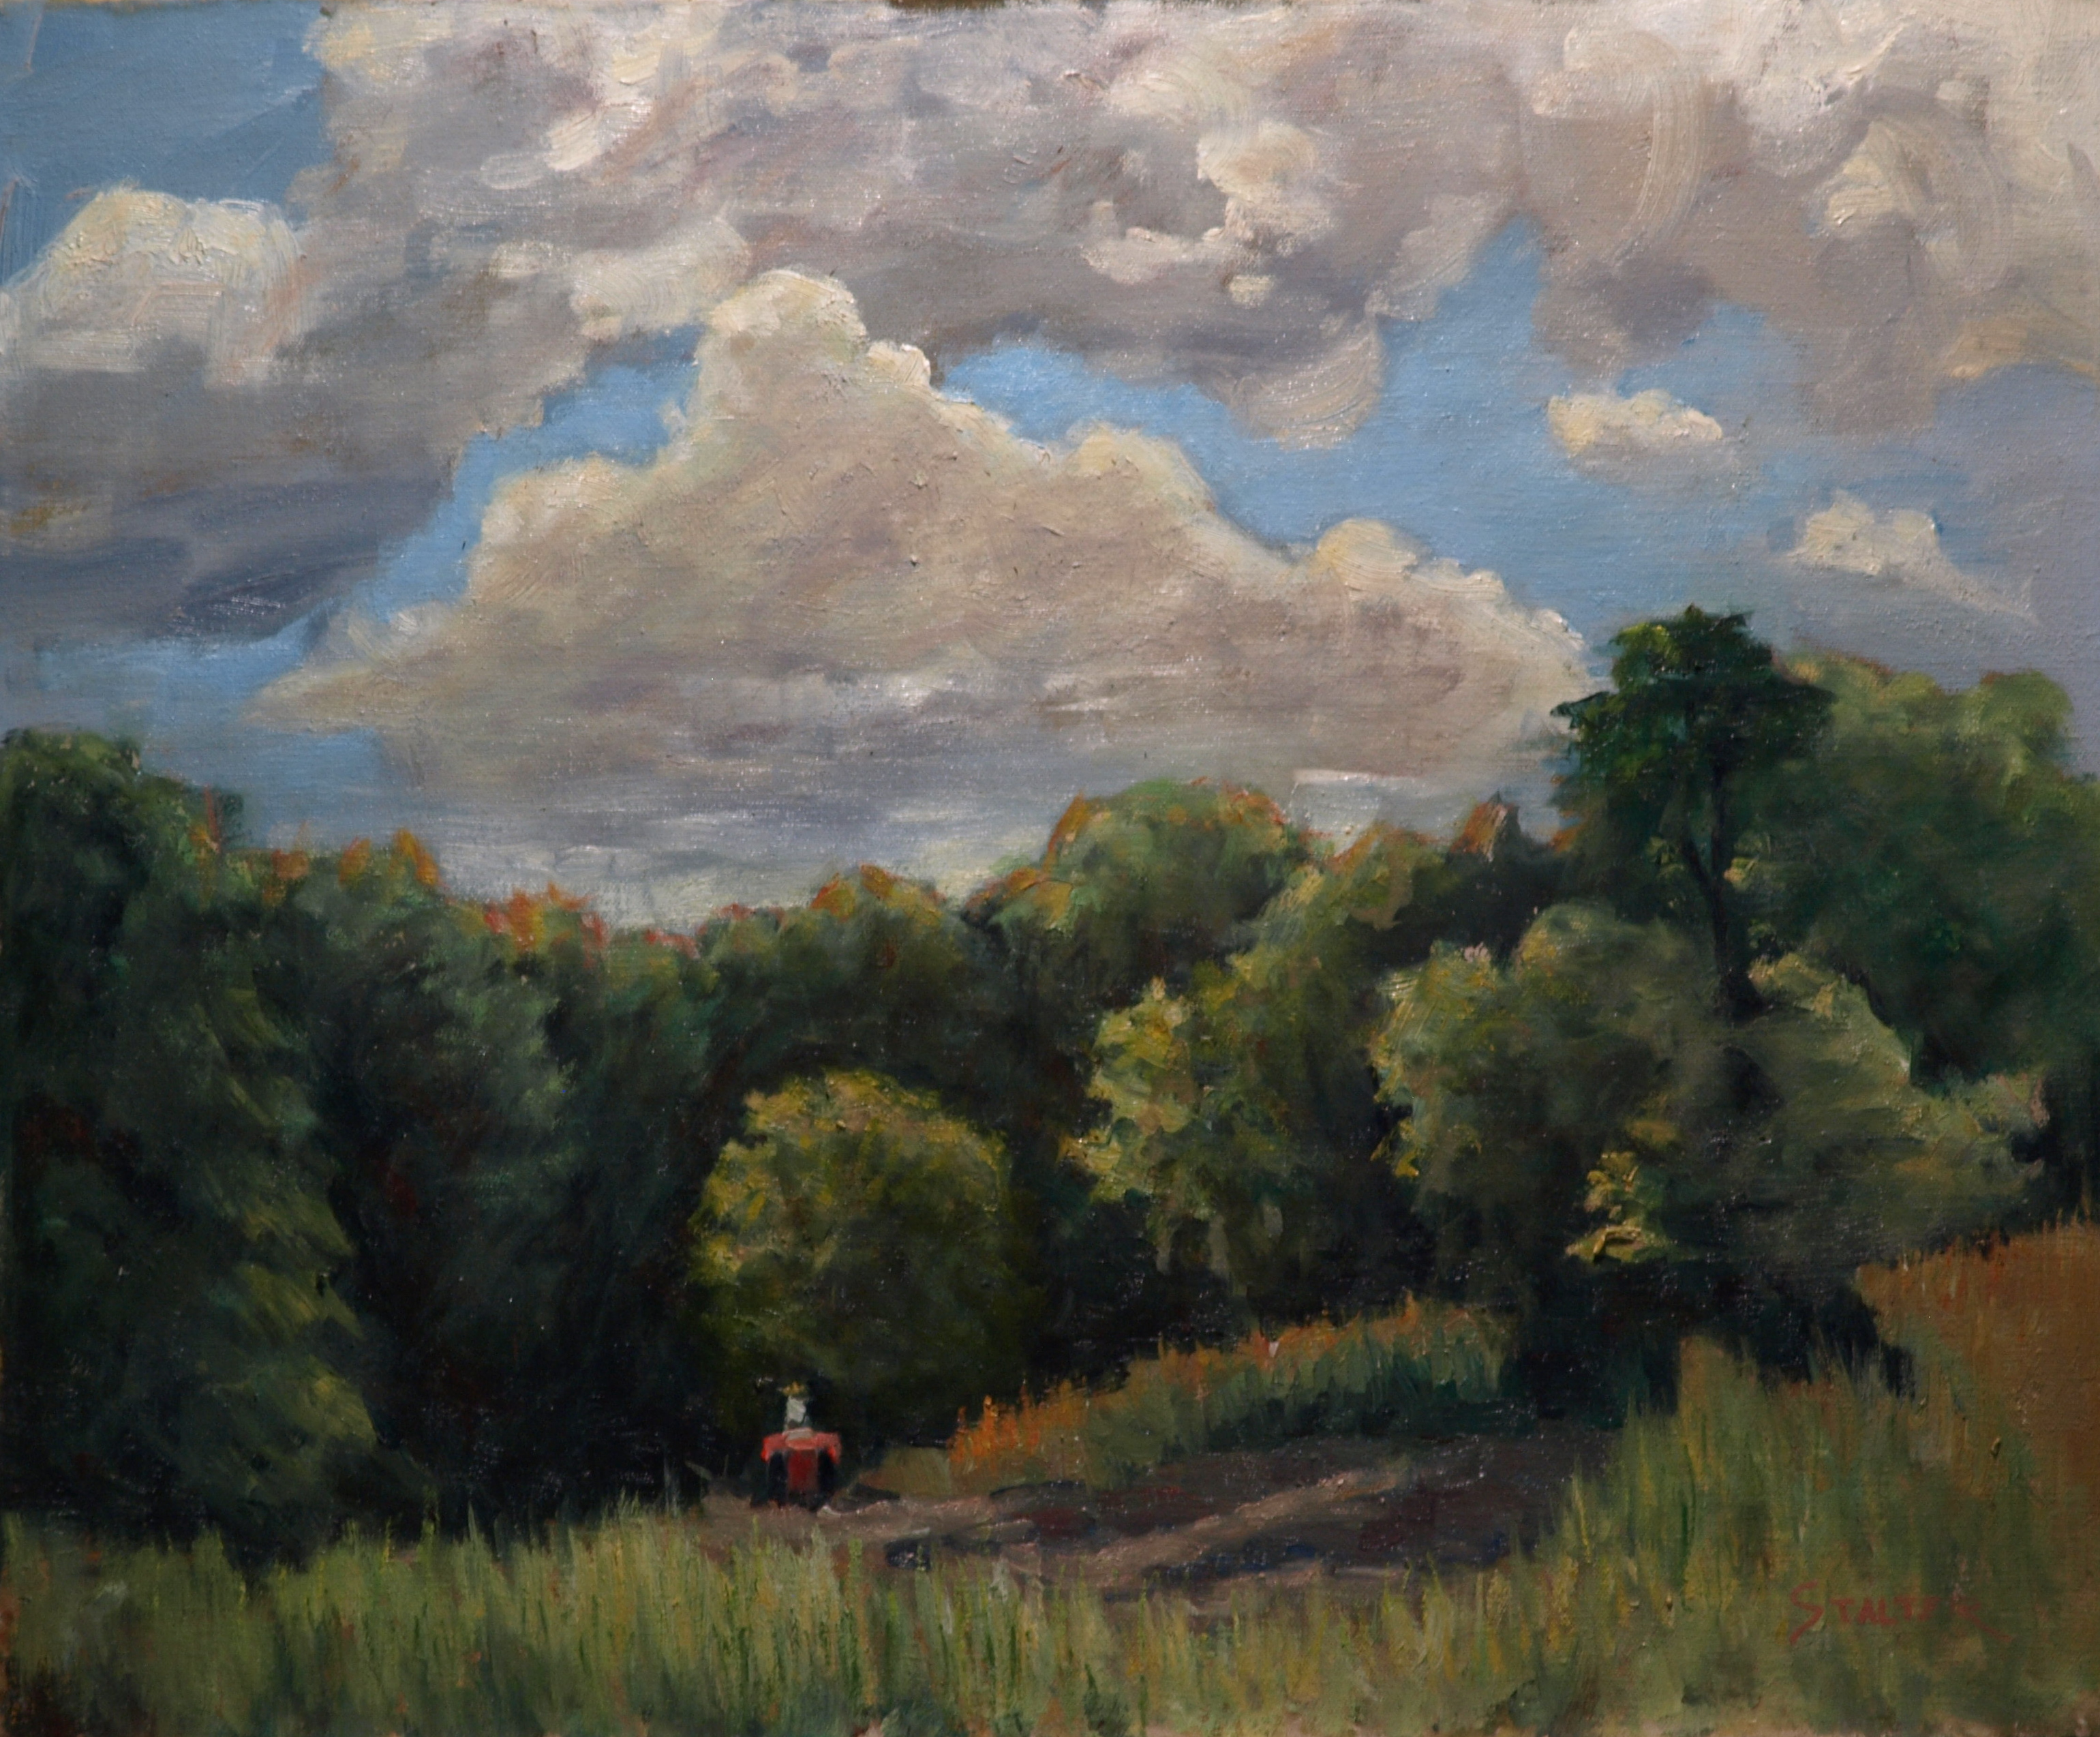 Tractor Heading Out, Oil on Canvas, 20 x 24 Inches, by Richard Stalter, $650